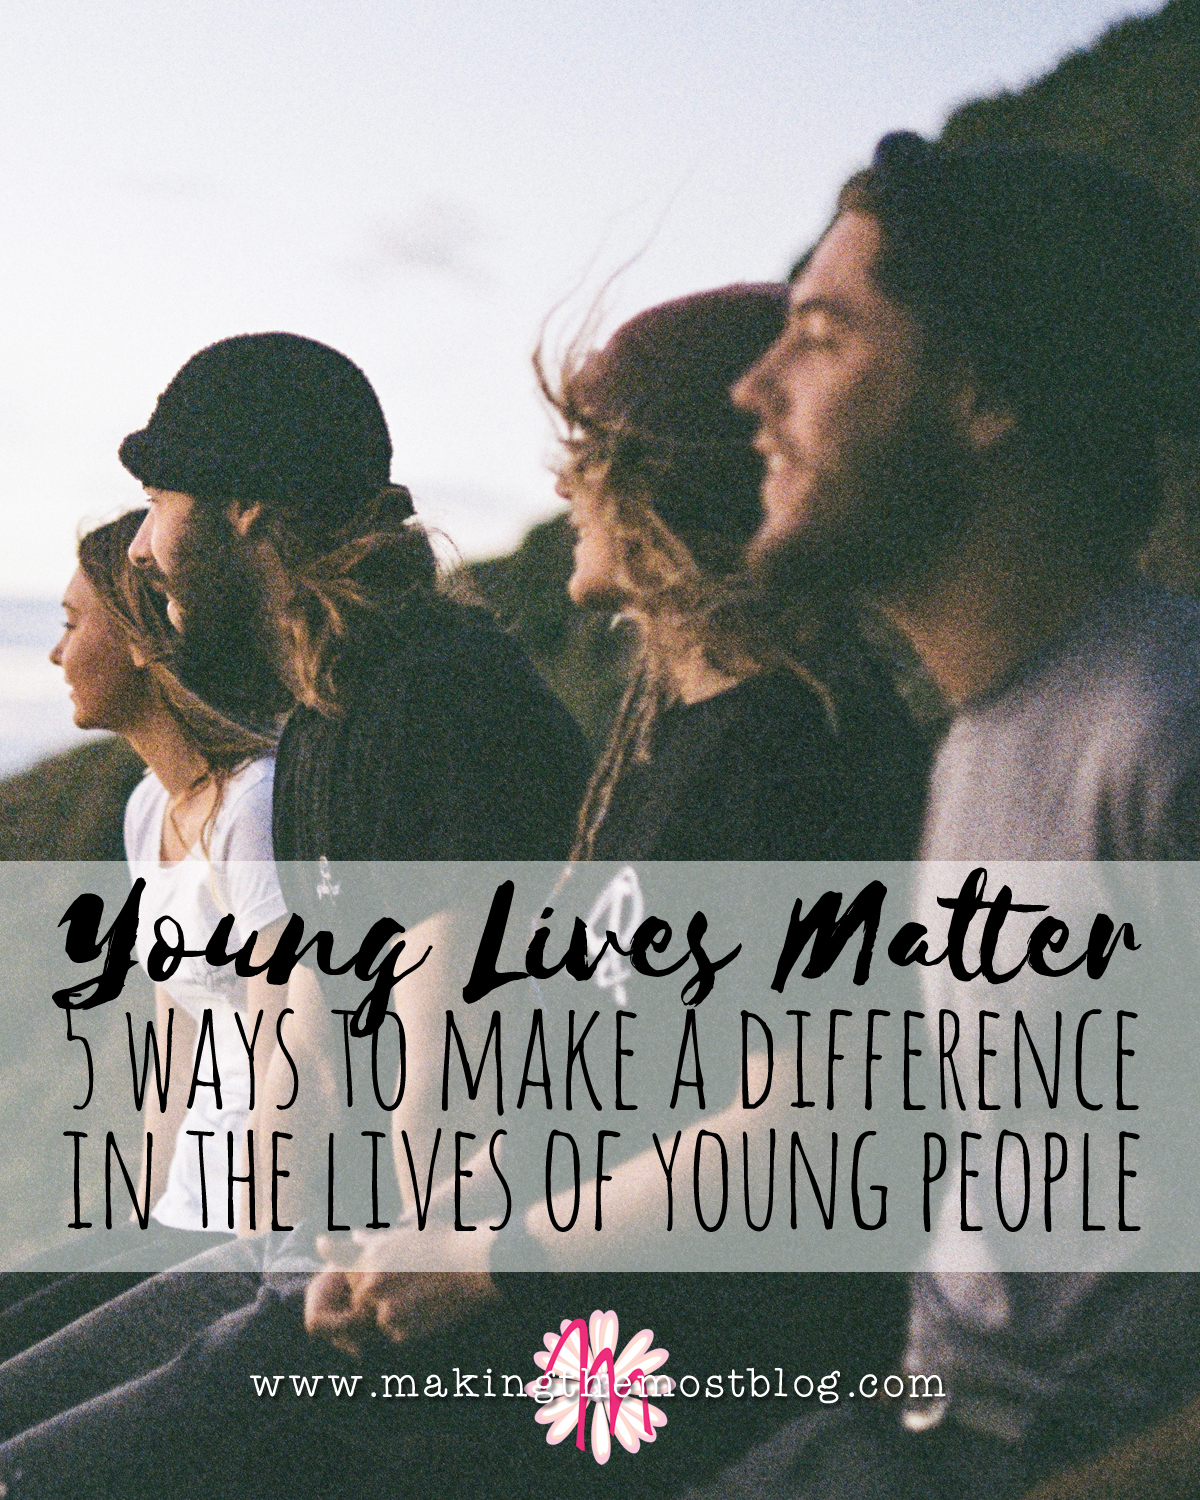 Young Lives Matter: 5 Ways To Make A Difference In The Lives Of Young People